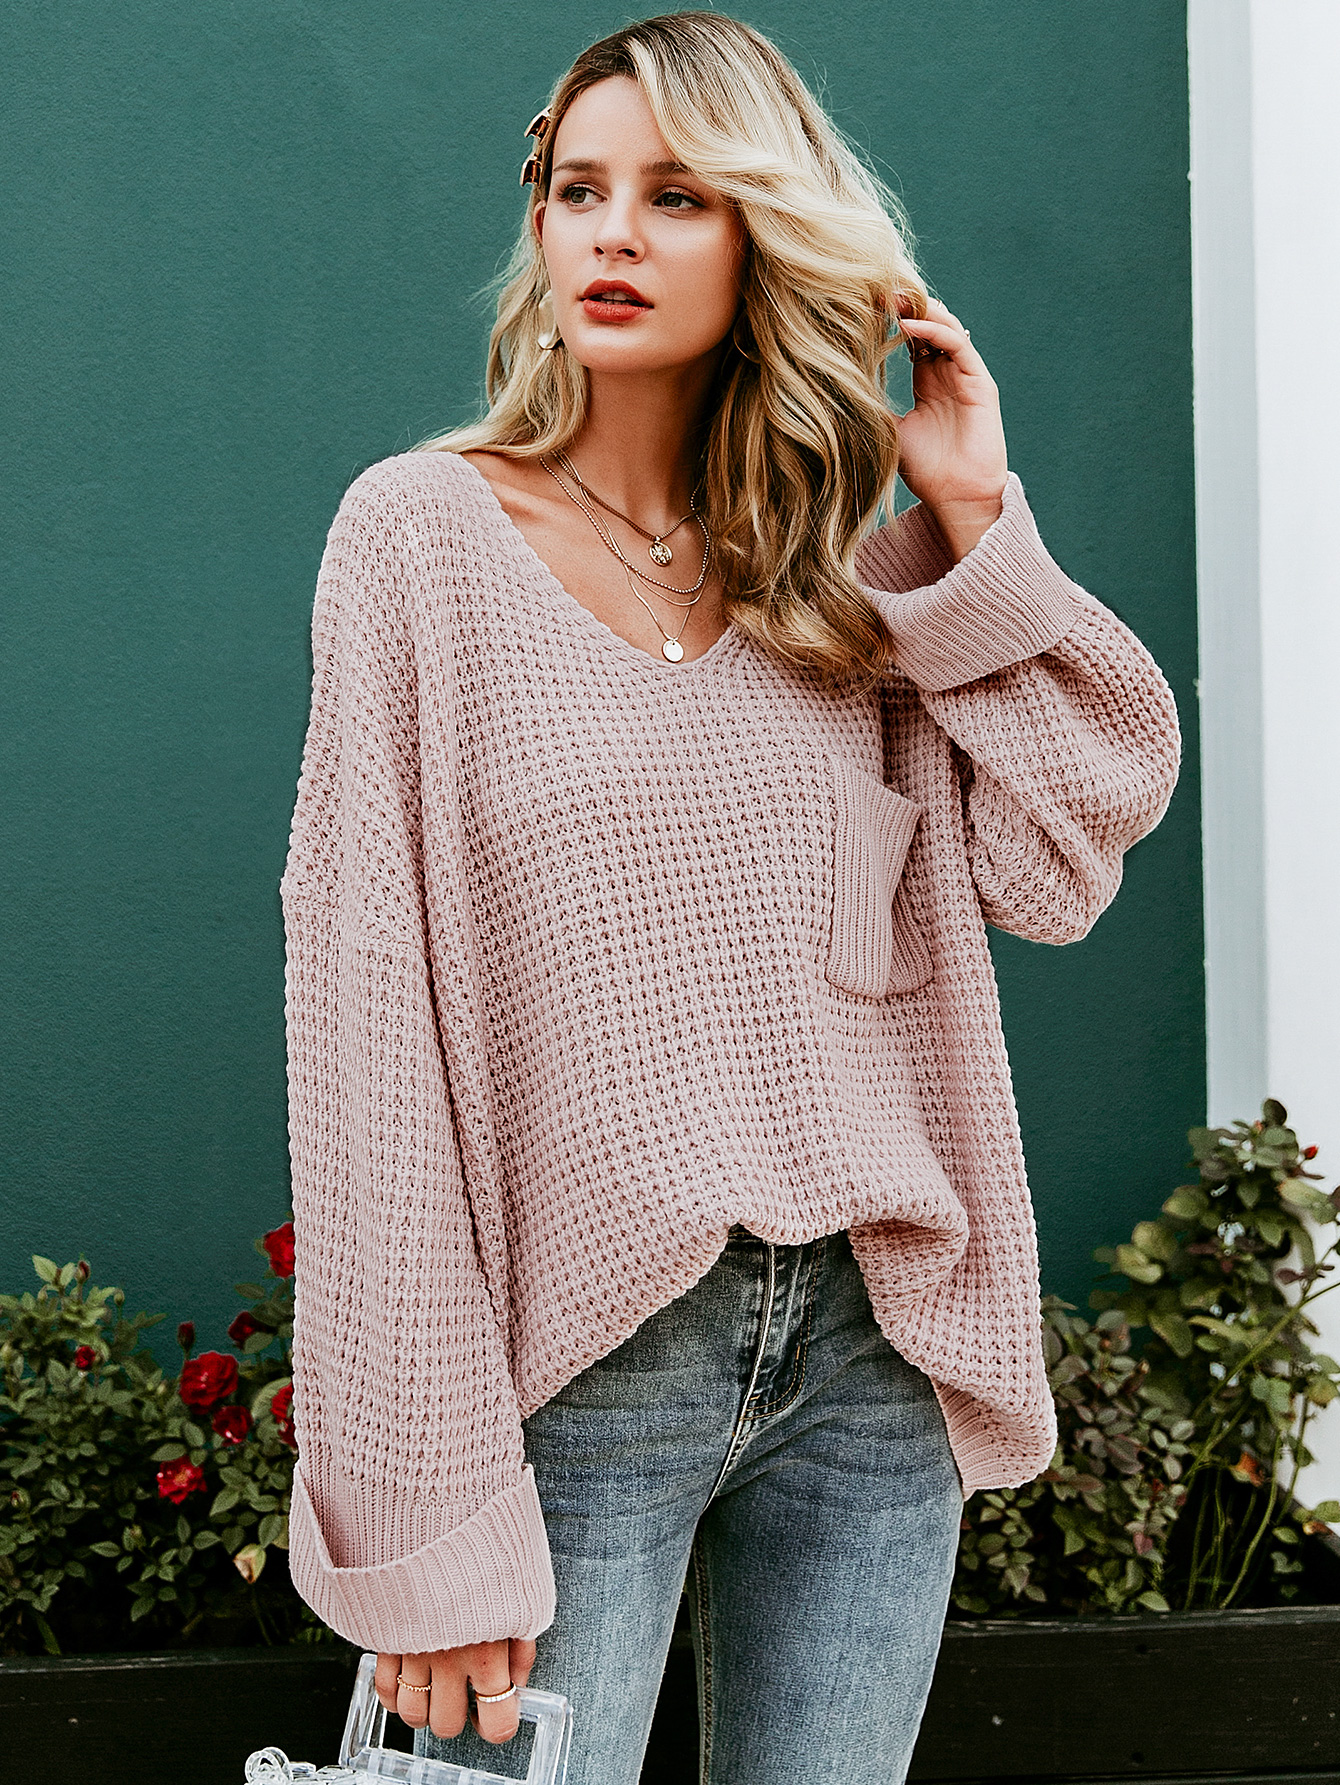 2019 New V-neck Loose Sweater Fashion Women Wholesale NHDE190219